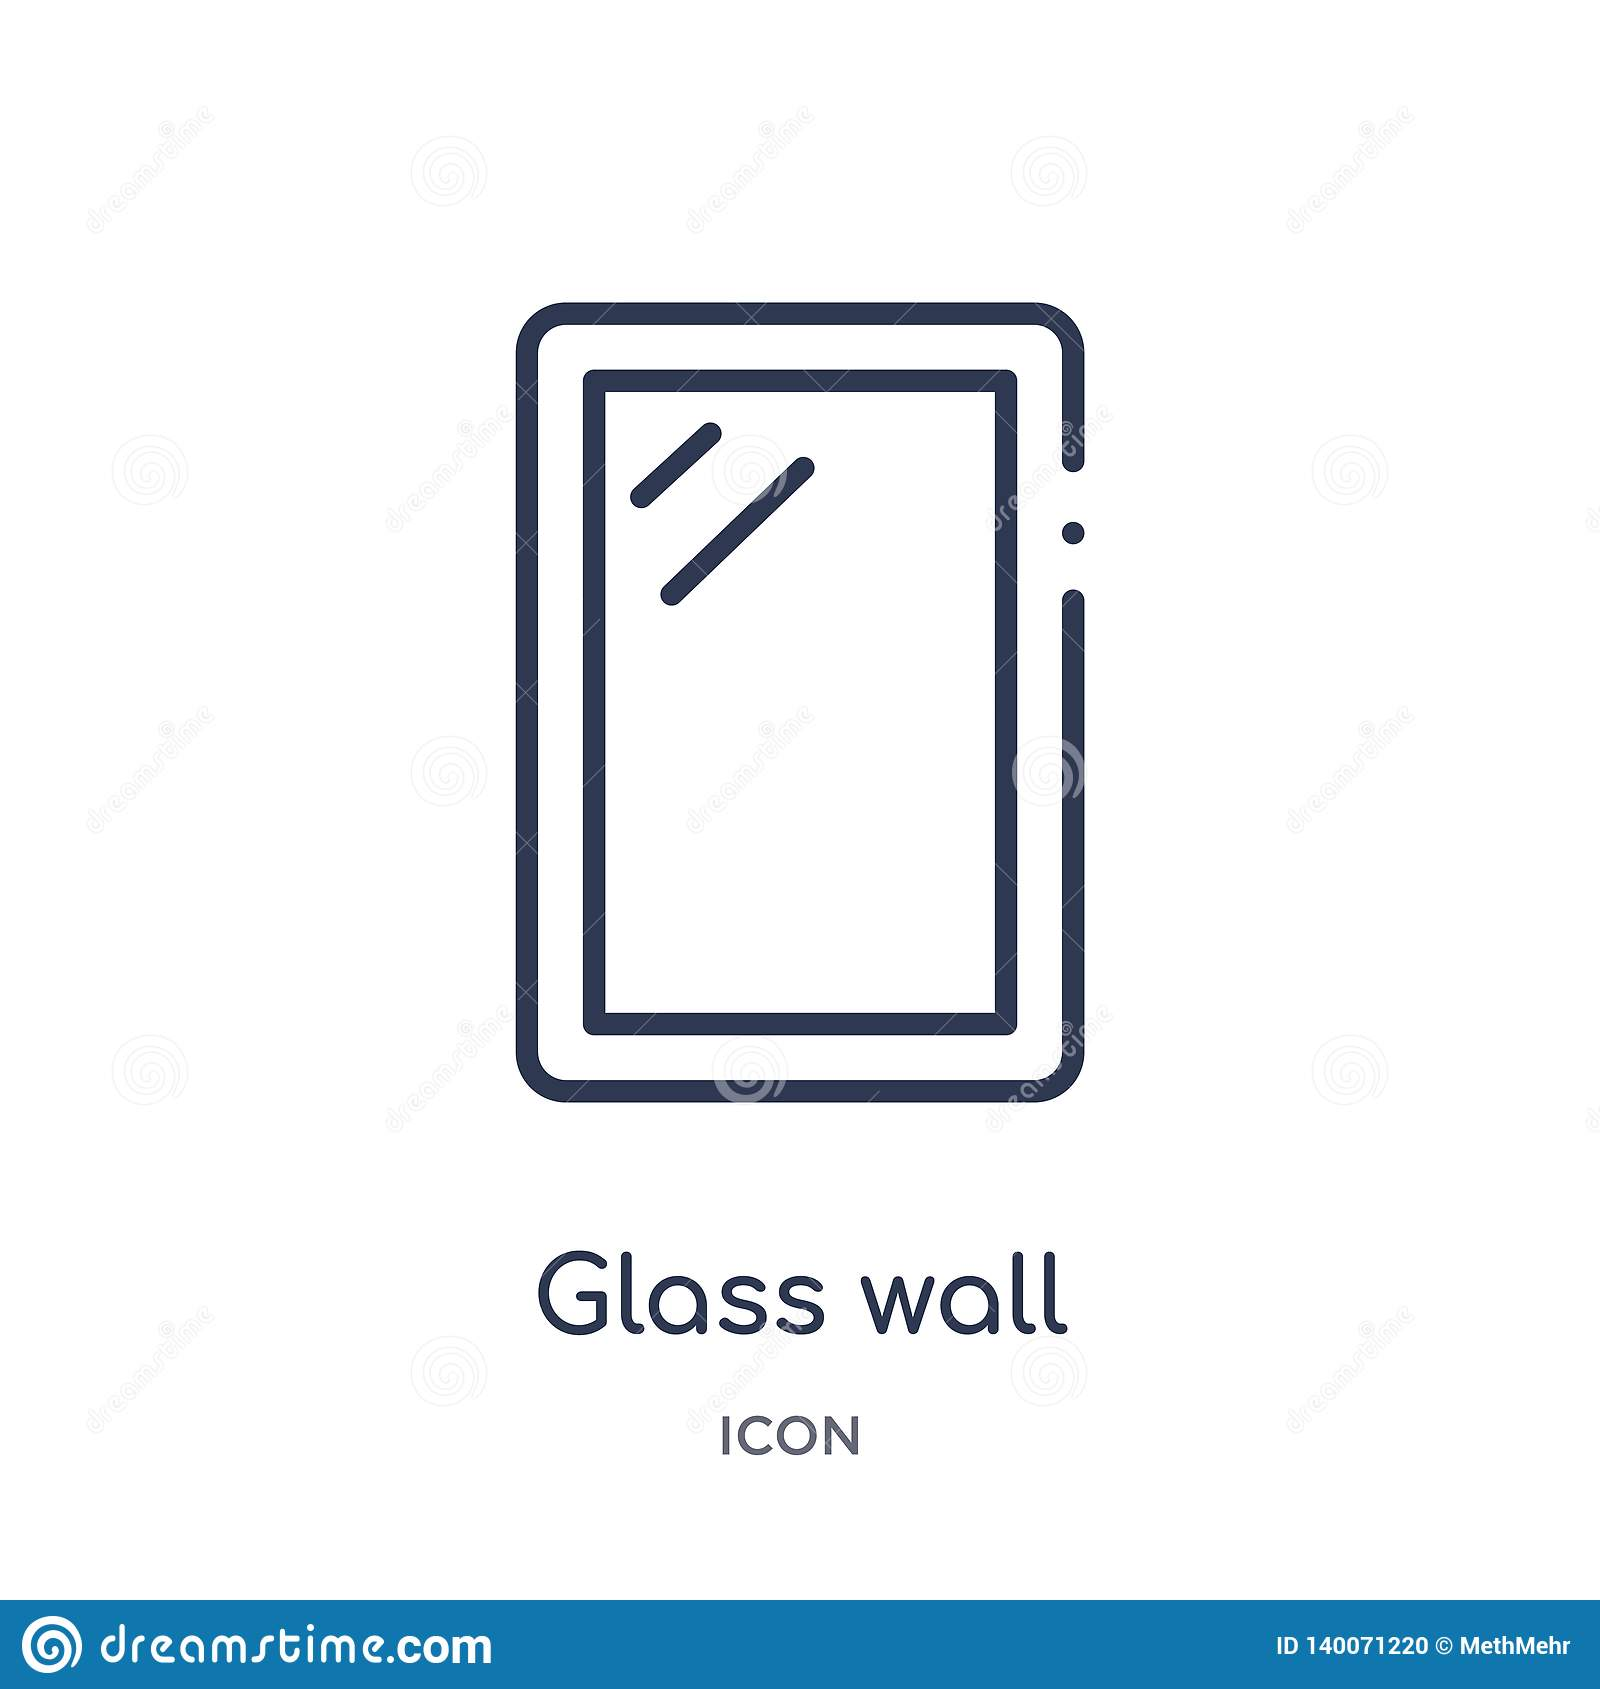 Linear glass wall icon from Construction and tools outline collection. Thin line glass wall icon isolated on white background.